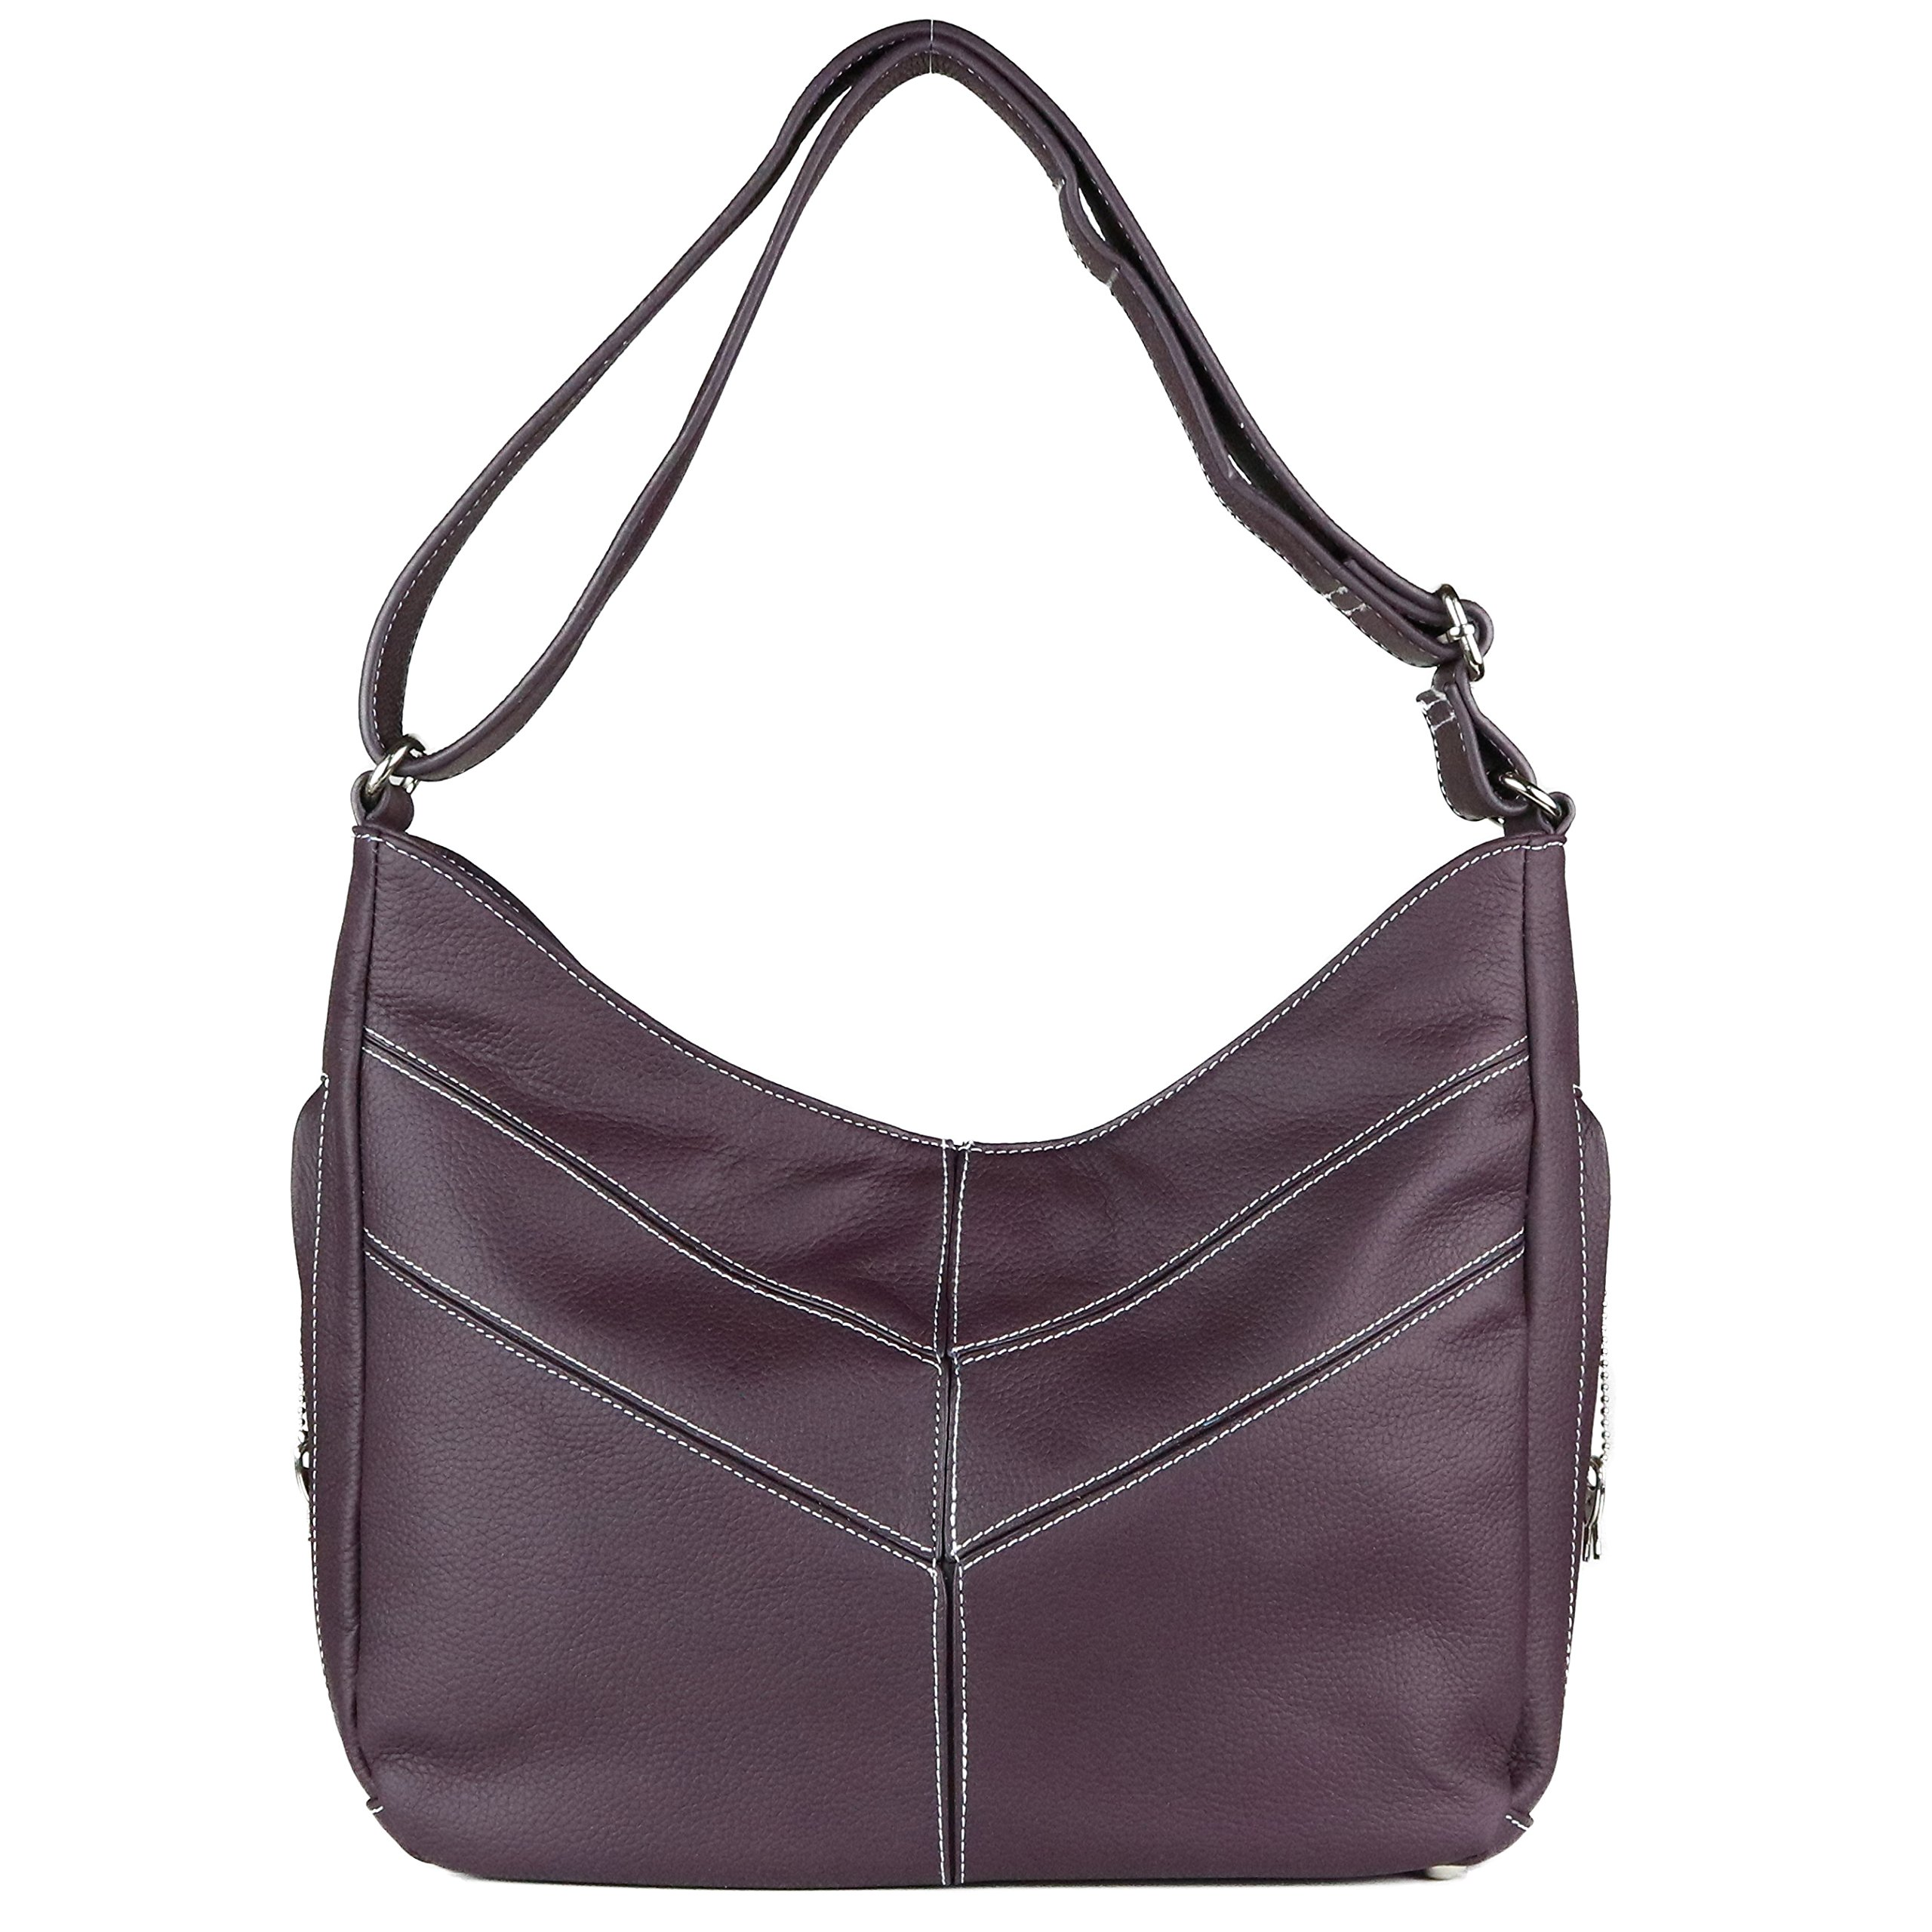 Concealed Carry Purse - The Jaden Stitched Hobo by Miss Conceal - Geniune Leather (Dark Purple)